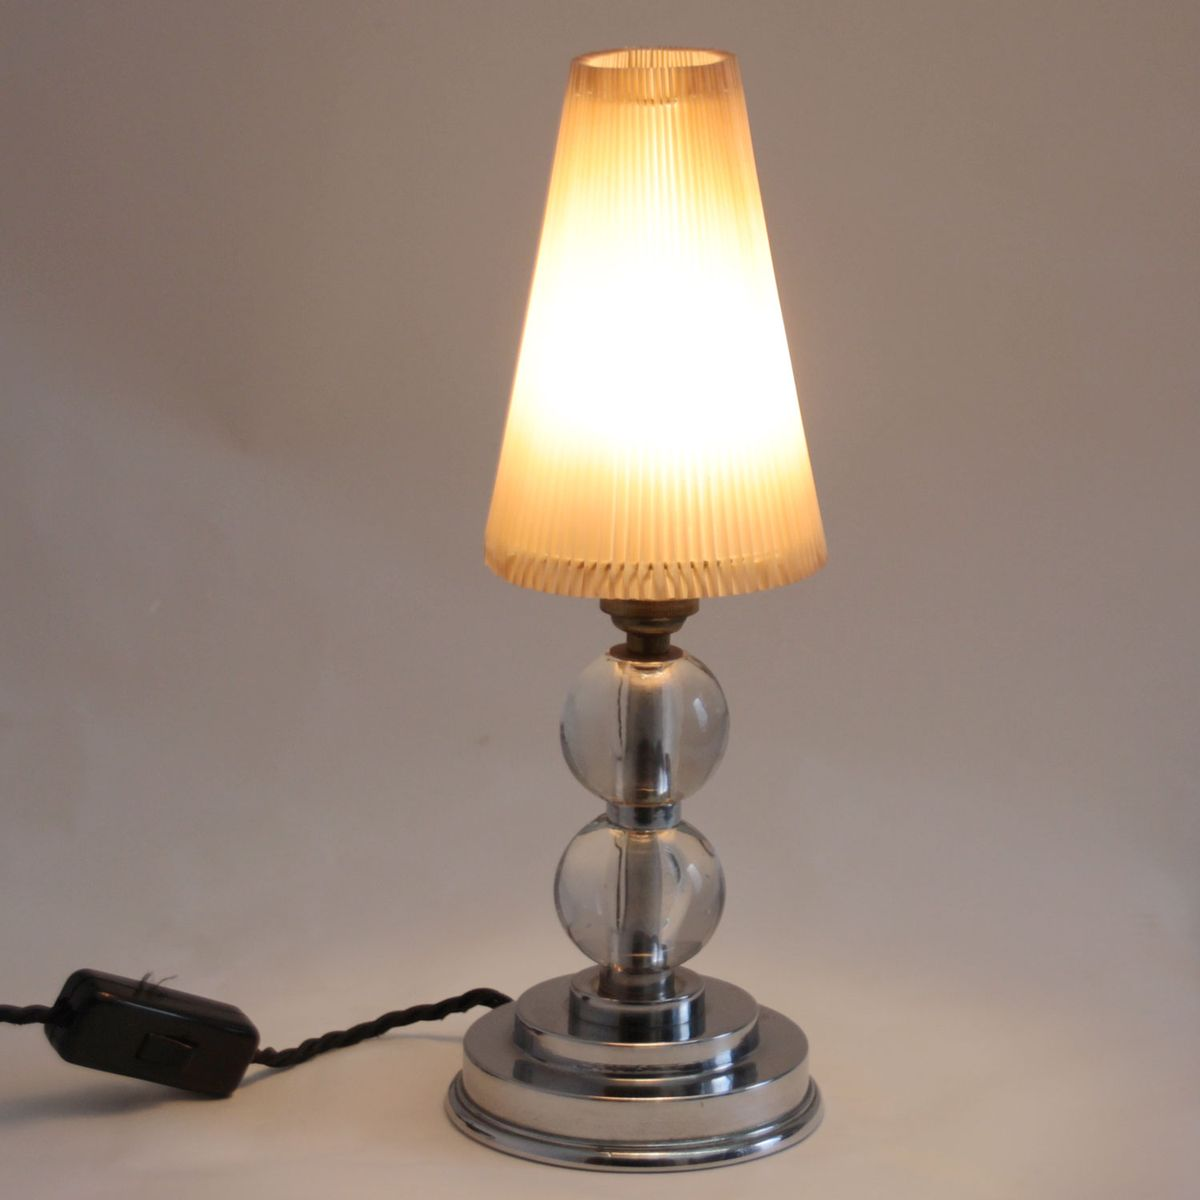 Mid century modern table lamp - Mid Century Modern Table Lamp With Glass Stem